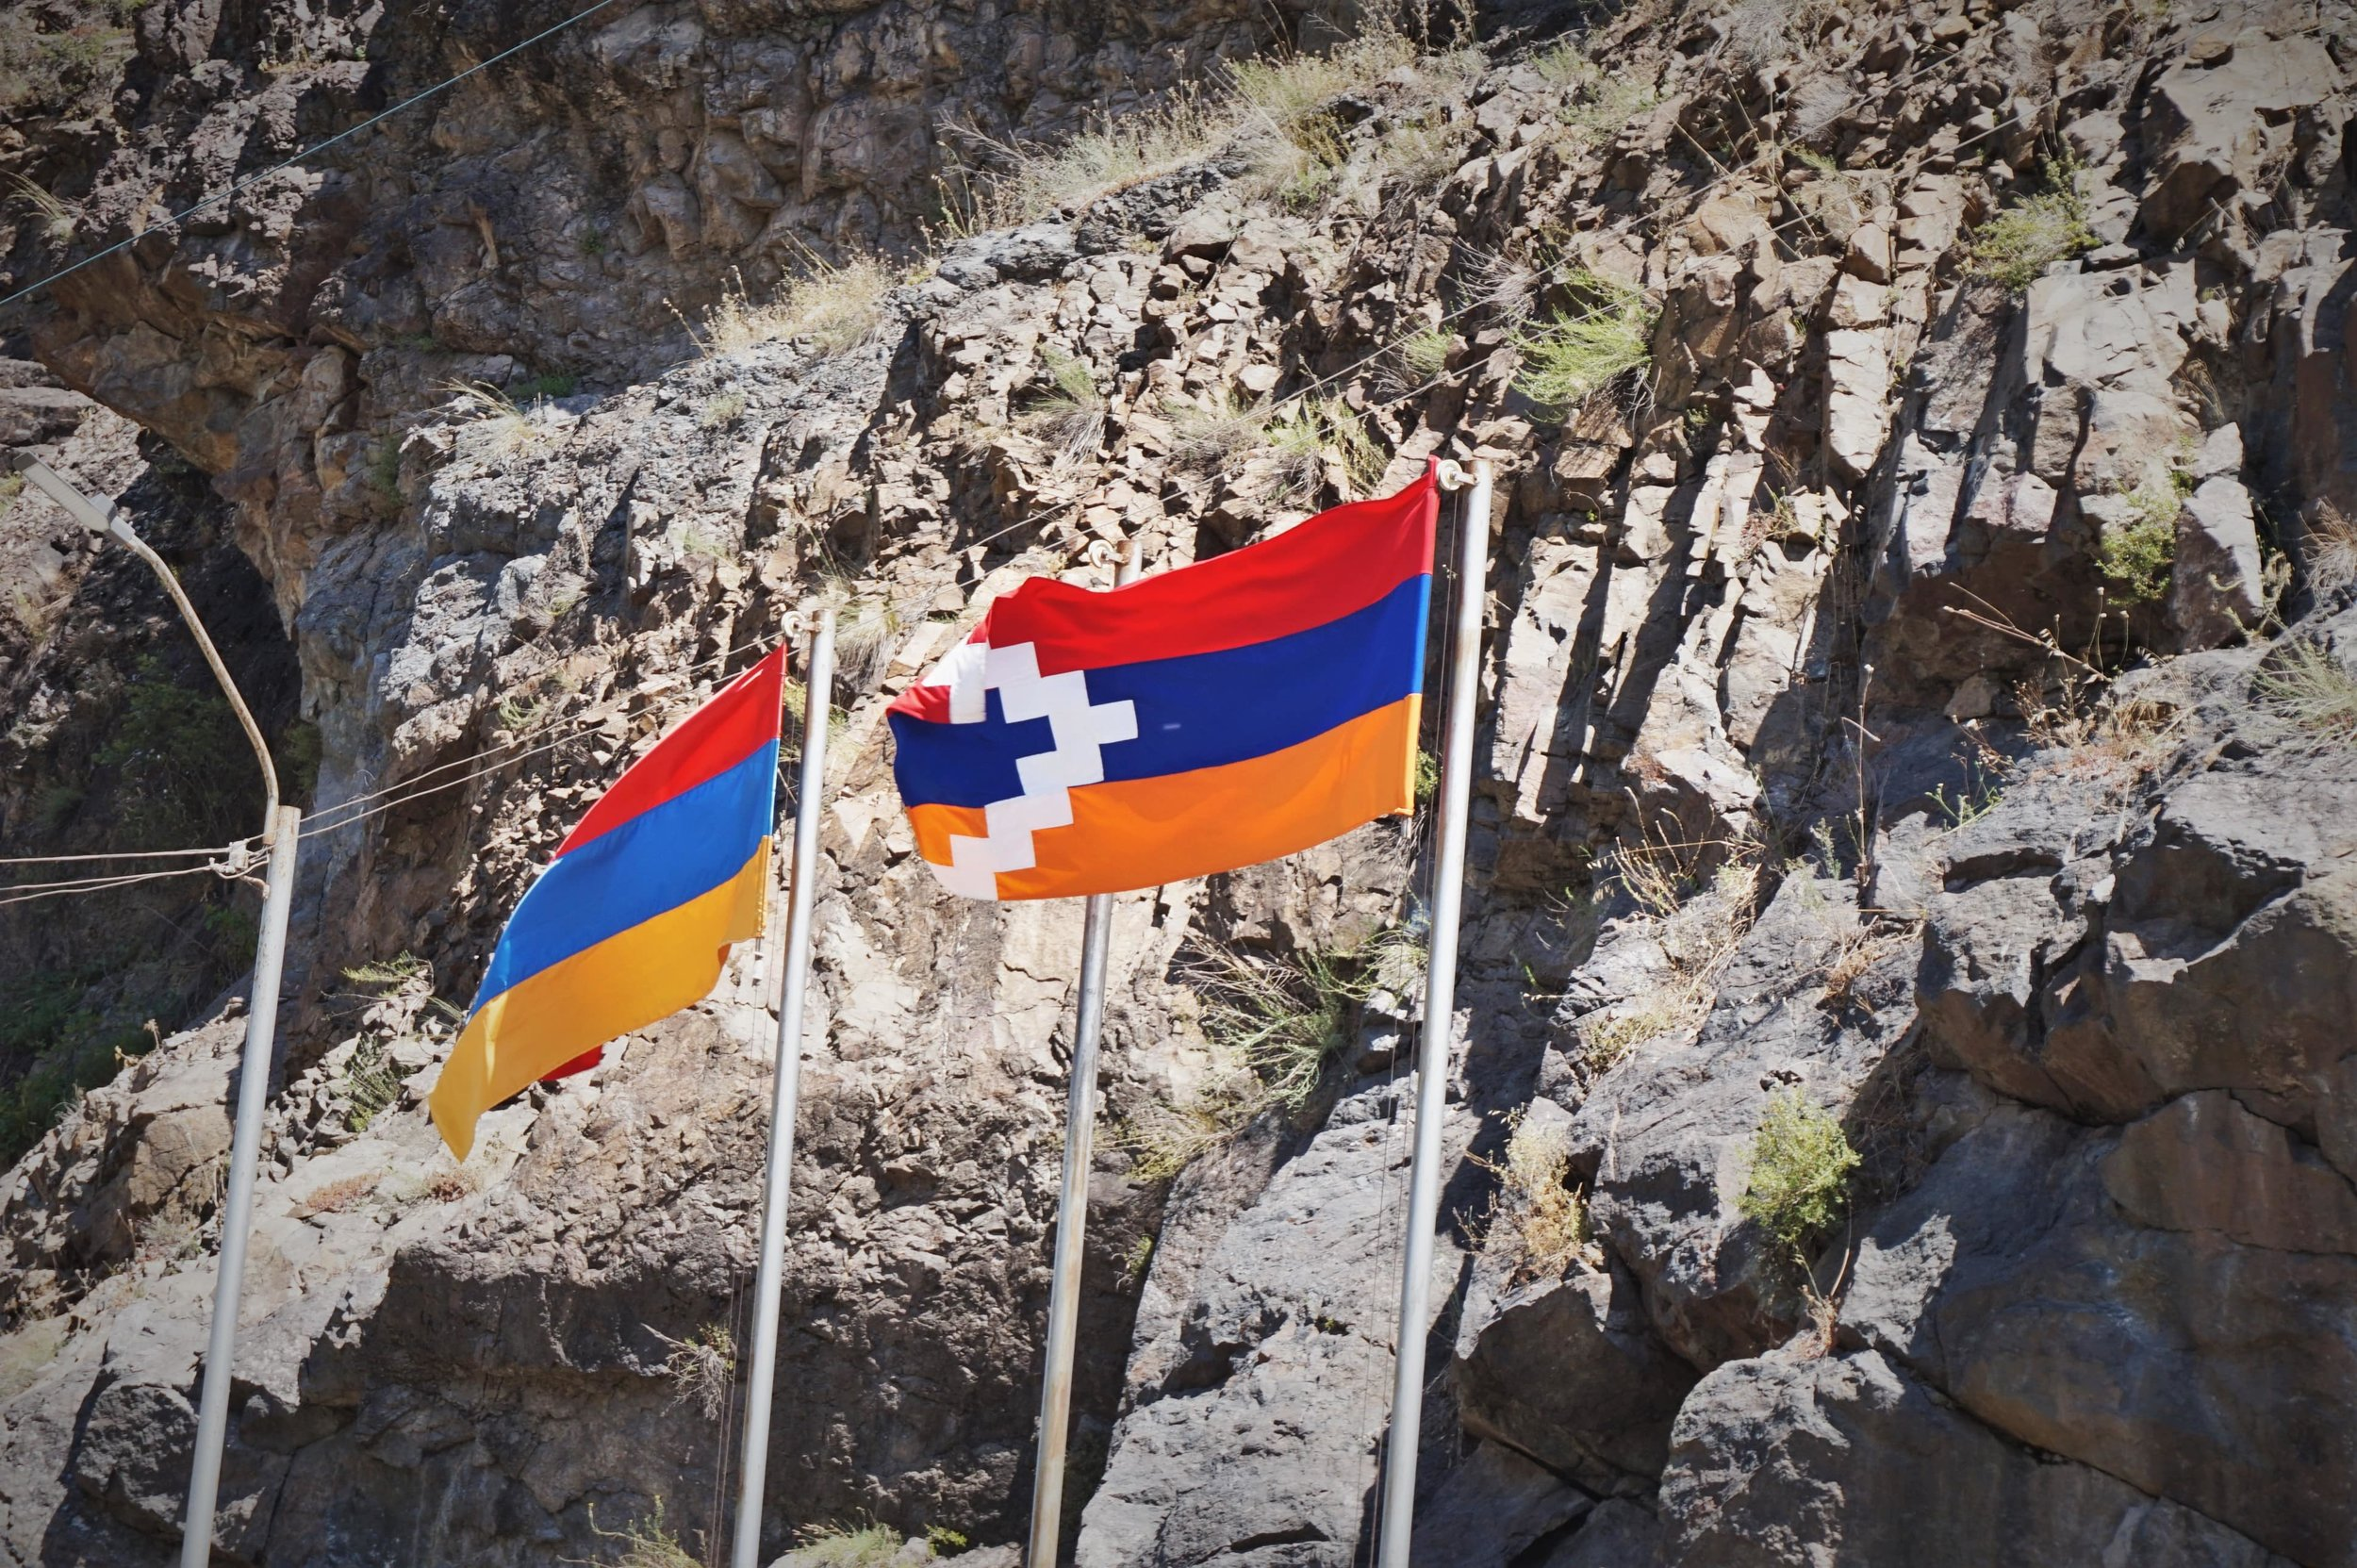 Things to do in the Republic of Artsakh. See the official flag of Artsakh (Nagorno-Karabakh)